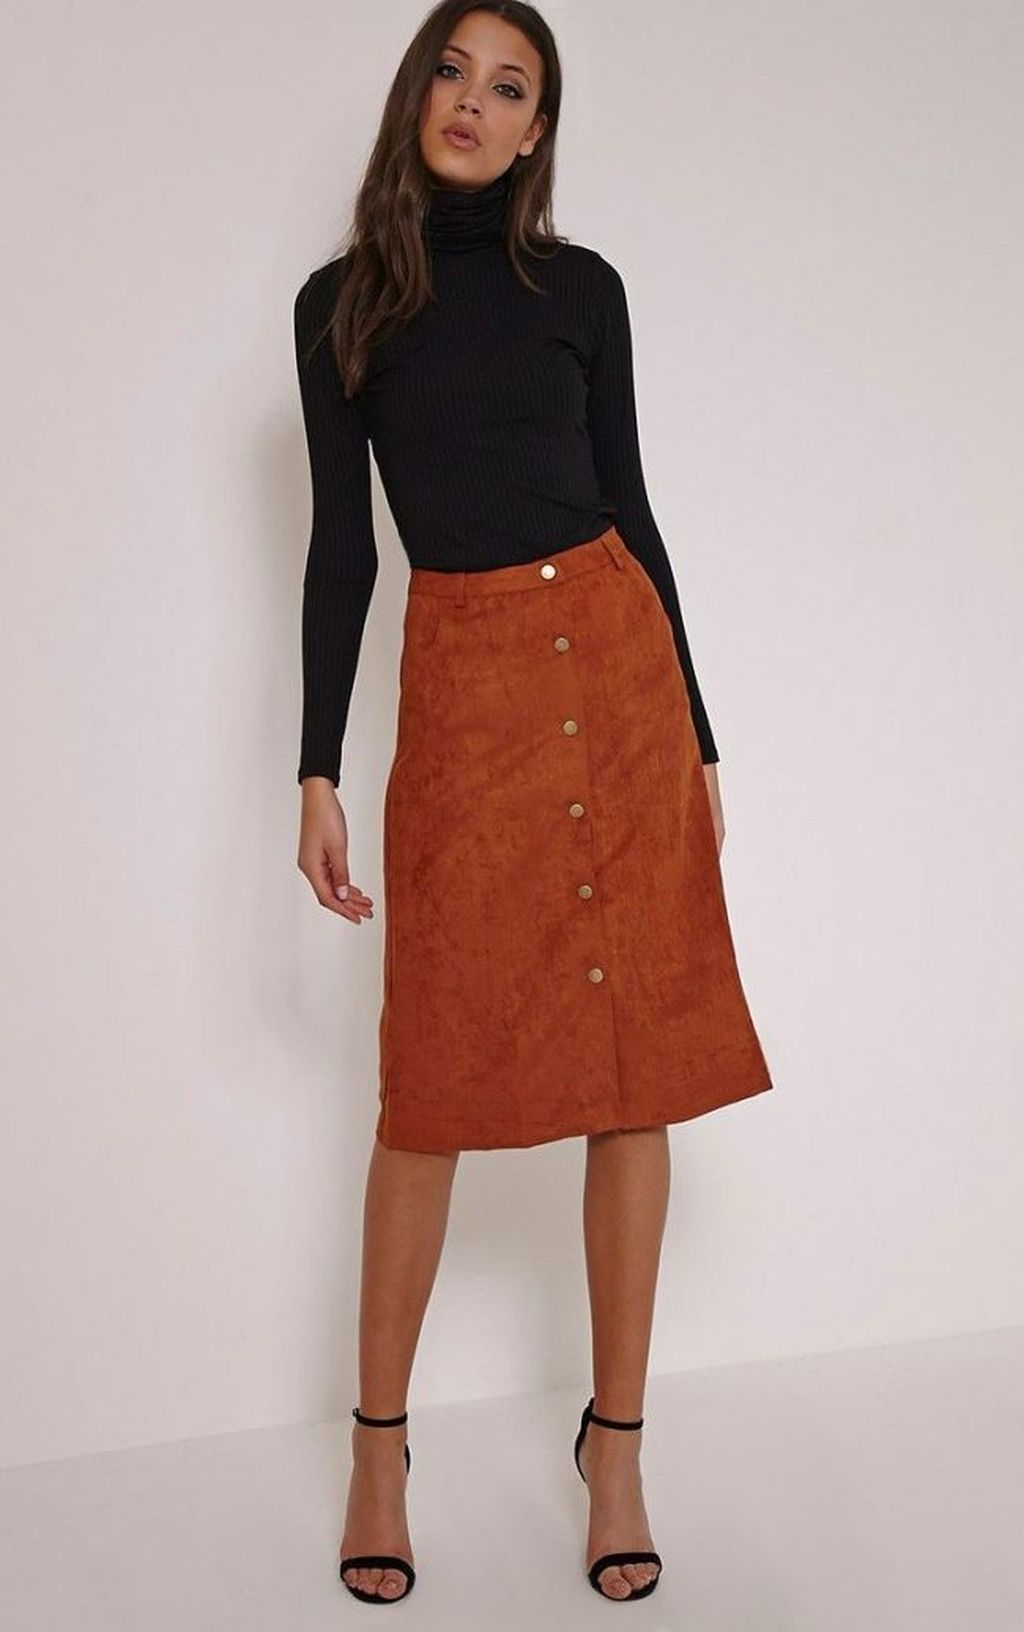 20+ Awesome Midi Skirt Design Ideas That You Can Copy Right Now